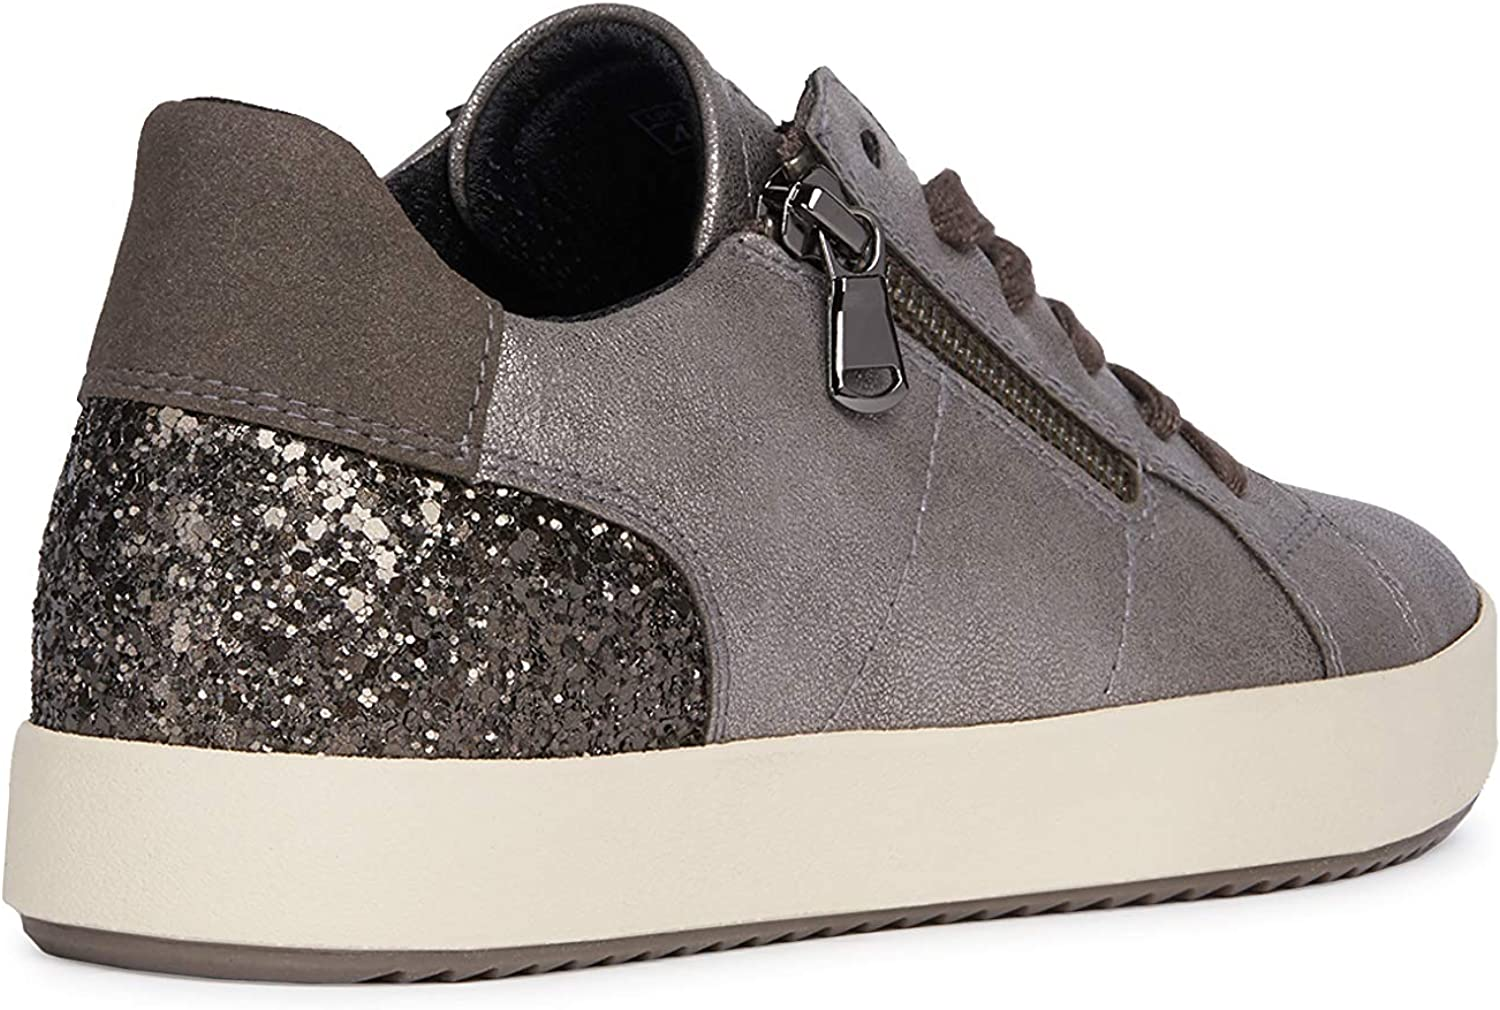 Geox Women's Blomiee 13 Glitter & Metallic Sneaker with Zip, L.BR, d.BRW/Leatherbrown D.brw/Leatherbrown